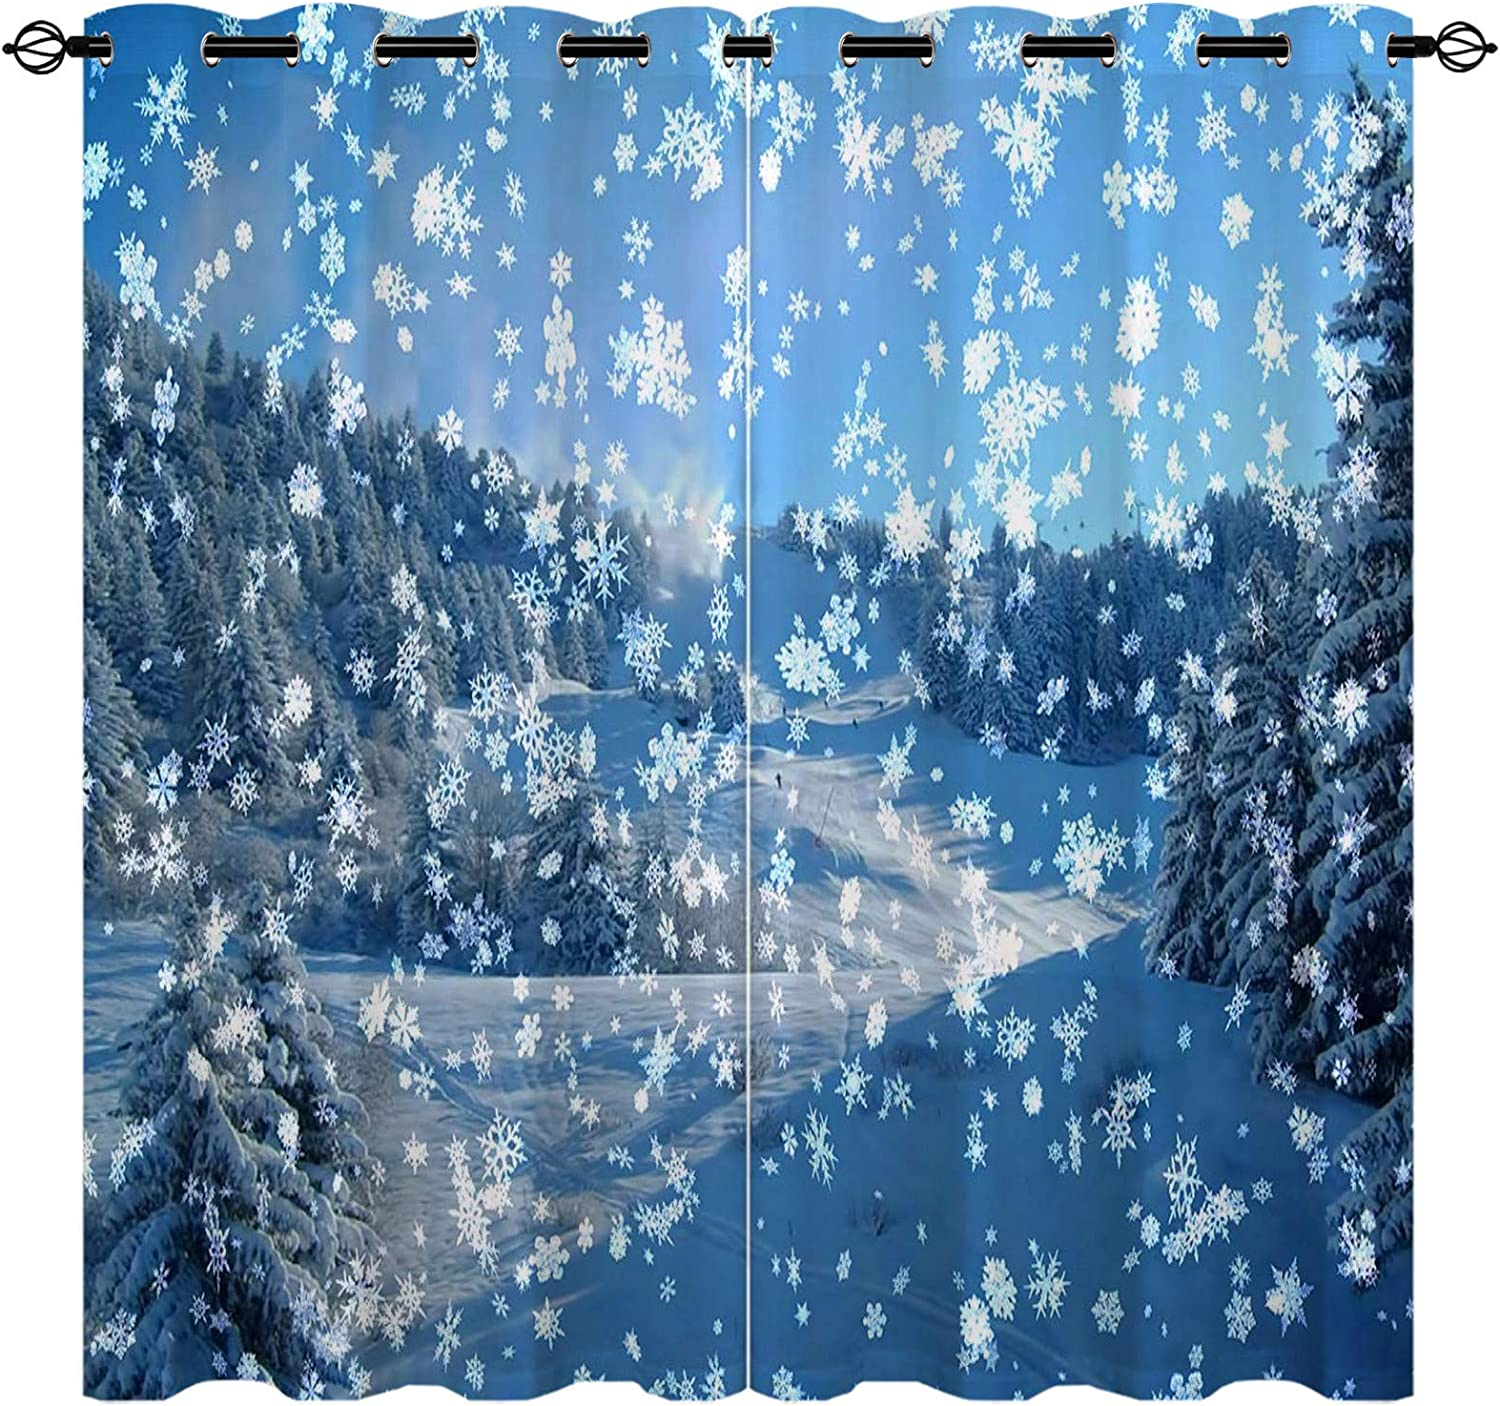 EiiChuang Snowflake 未使用 Curtains 大幅にプライスダウン Thermal Insulated Curtain Blackout